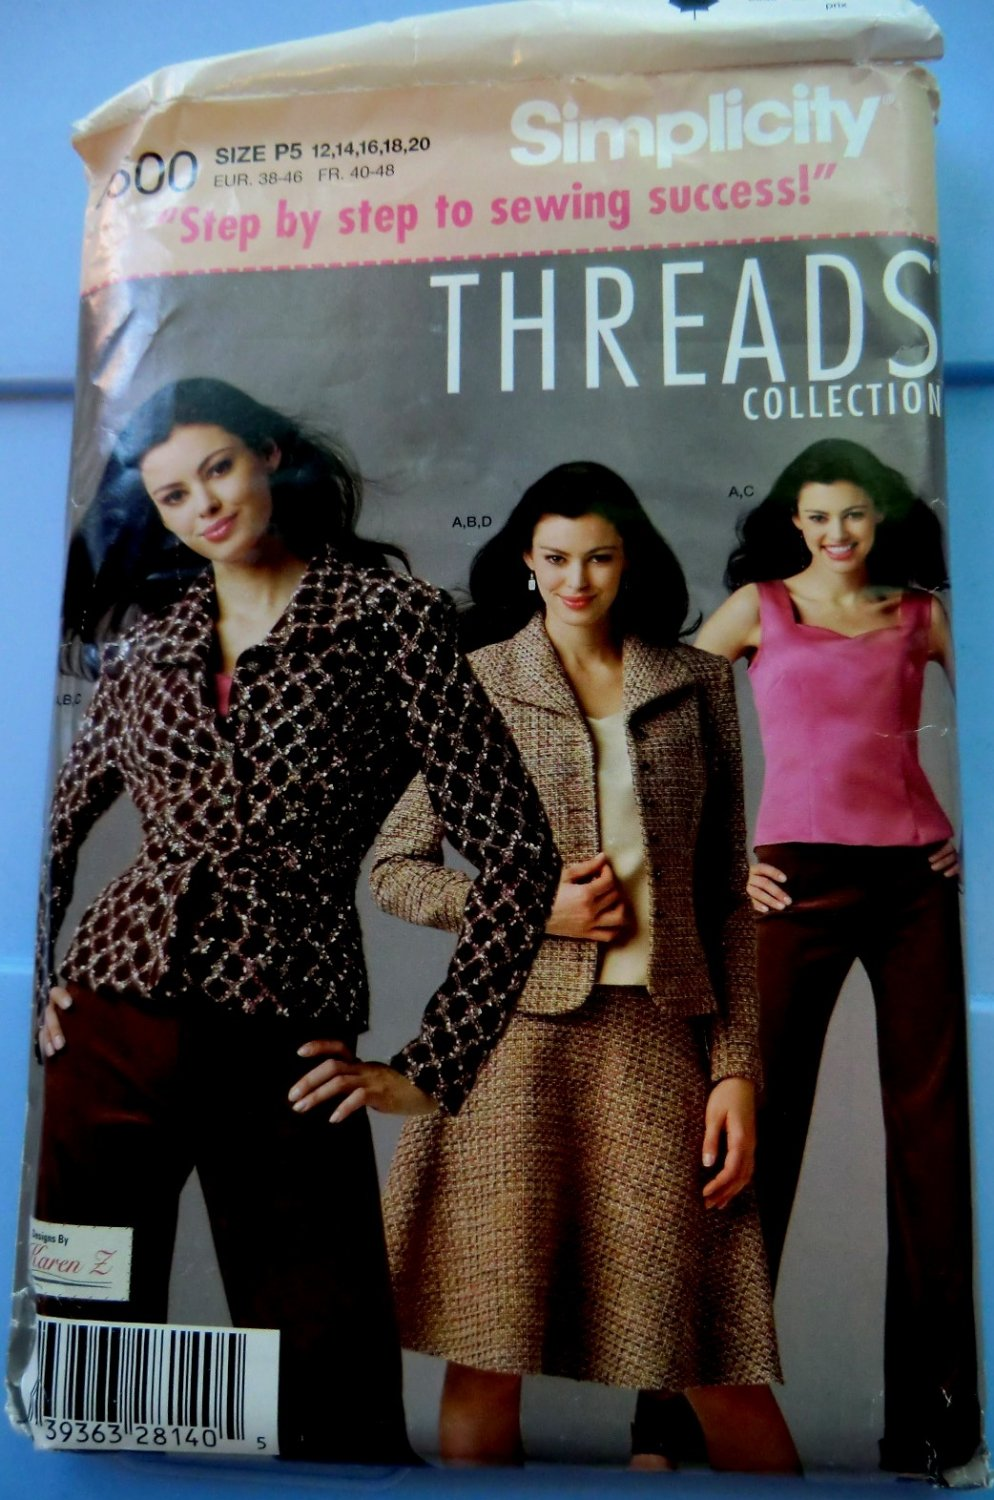 Simplicity Pattern # 4500 UNCUT Misses THREADS Wardrobe Skirt Pants Lined Jacket Size 12 14 16 18 20